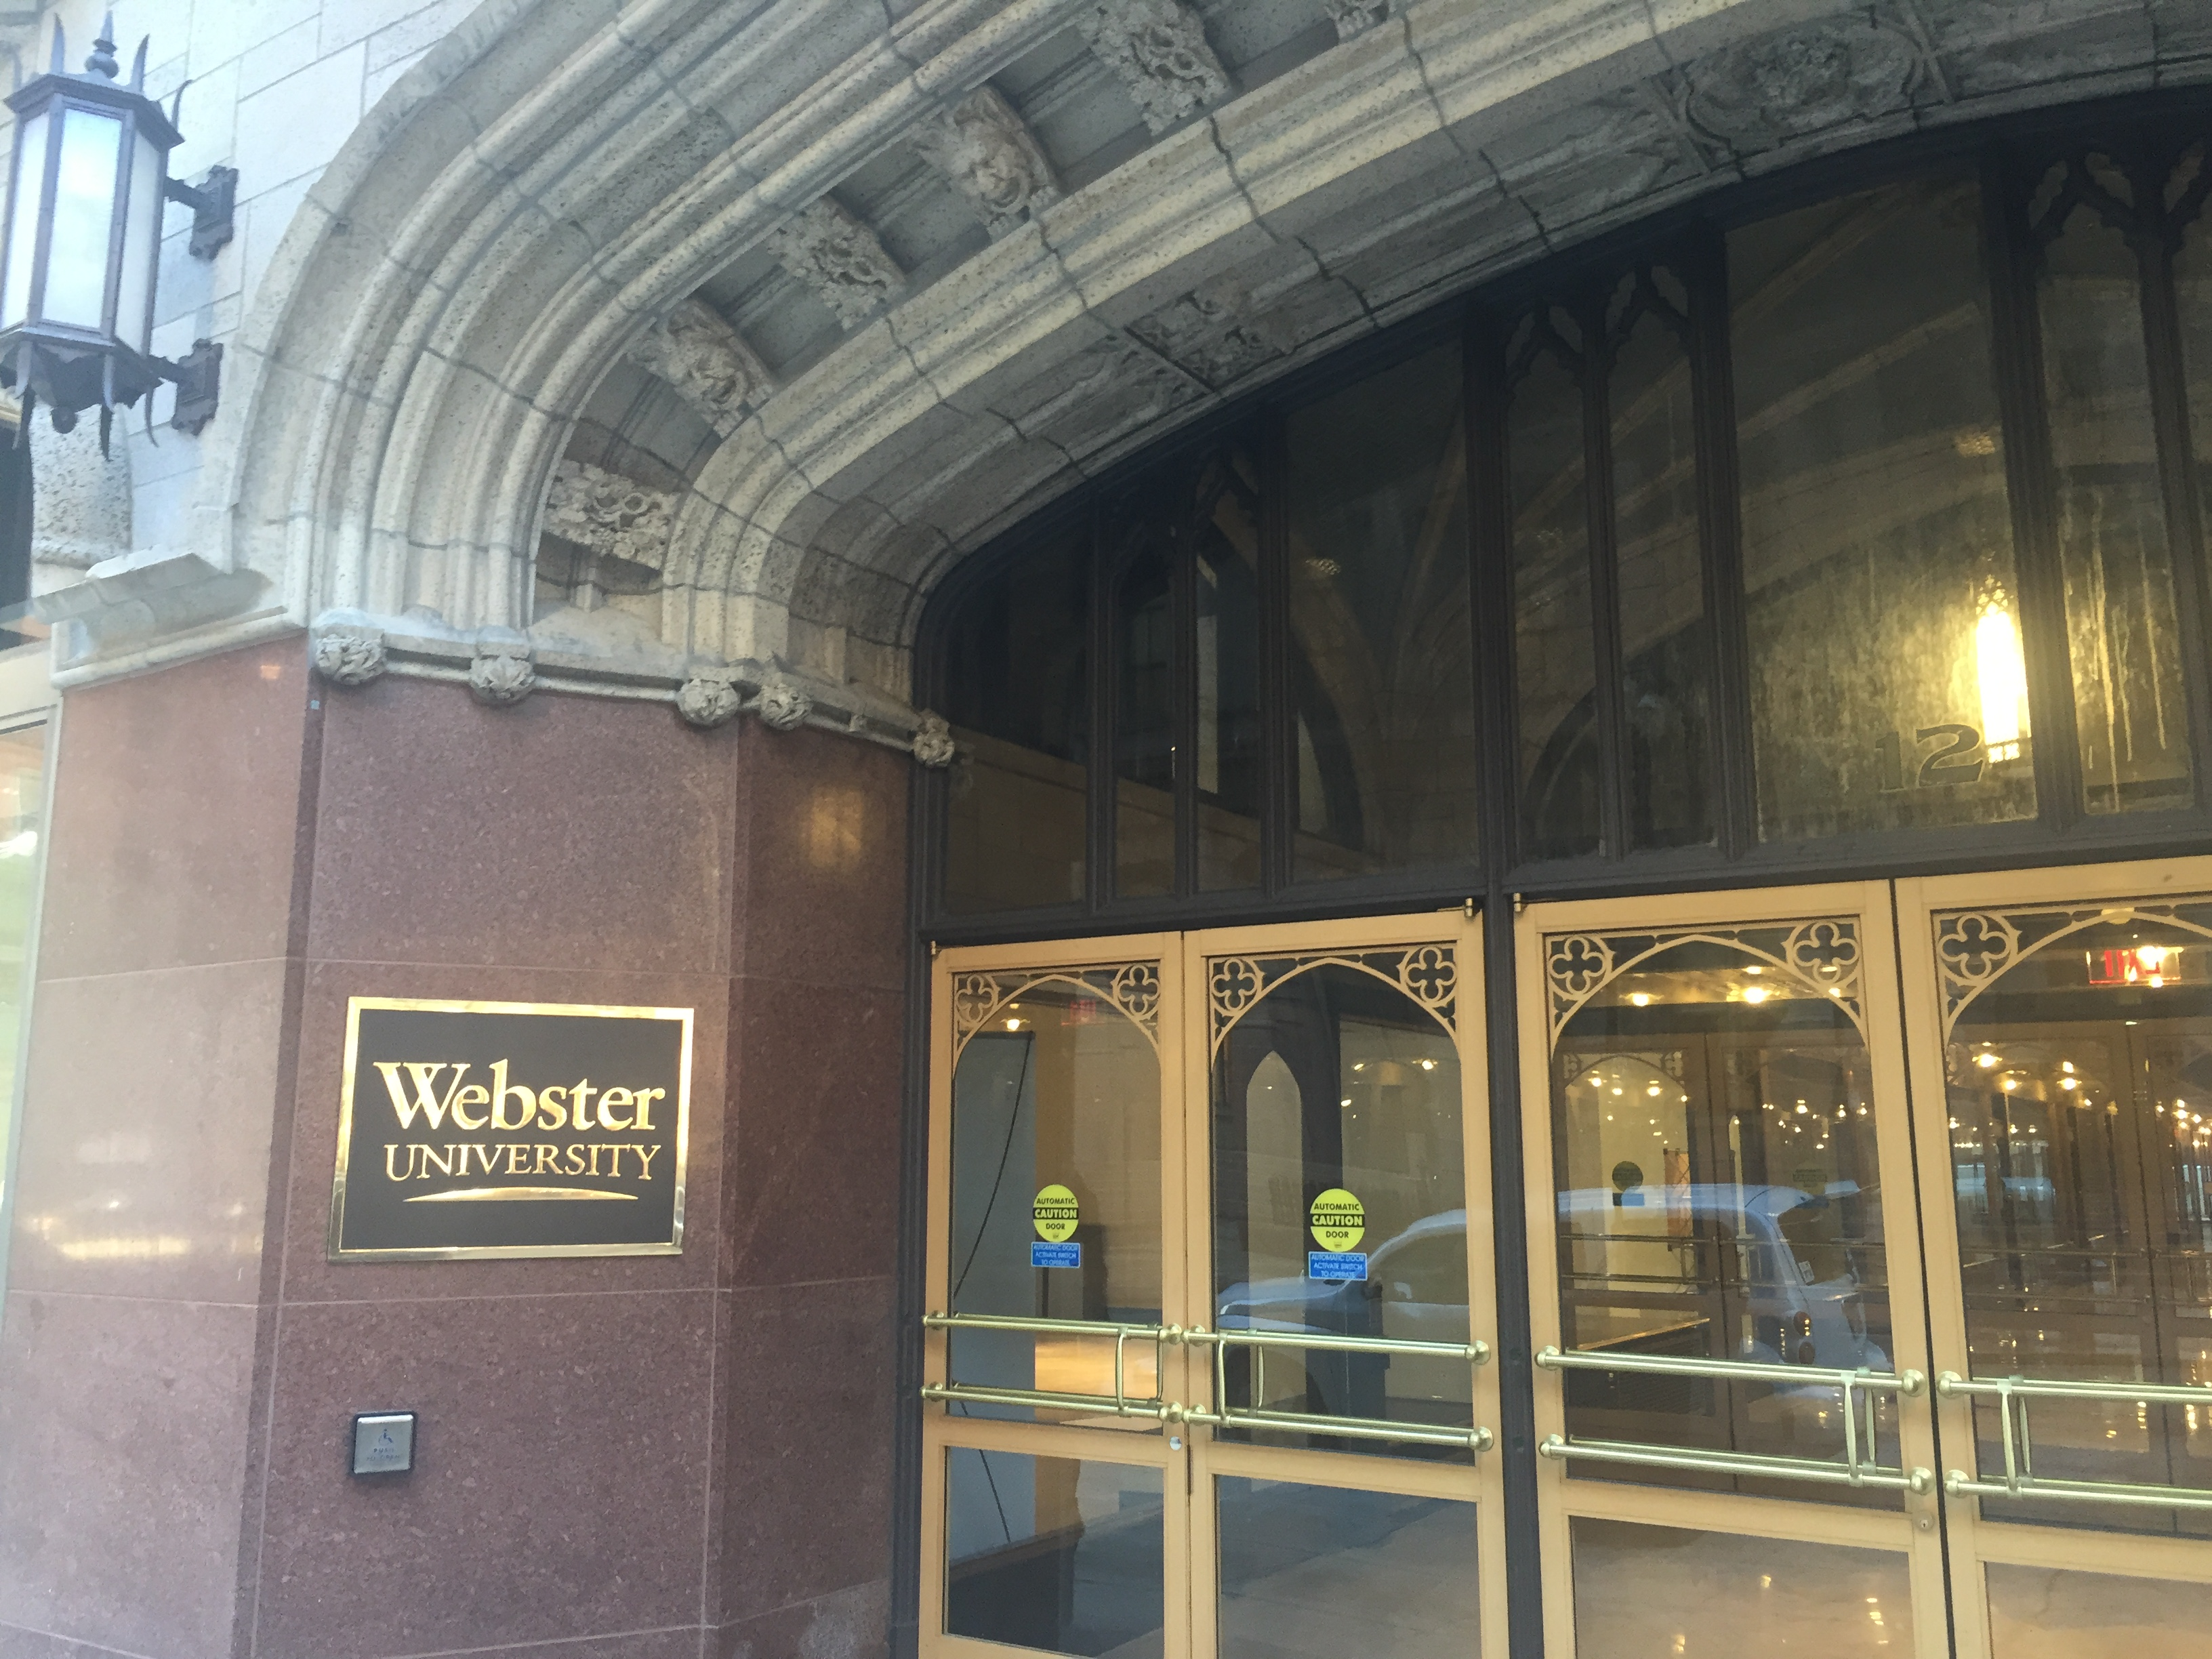 Webster University Downtown, Arcade Building. Photo by Debbie Monterrey.